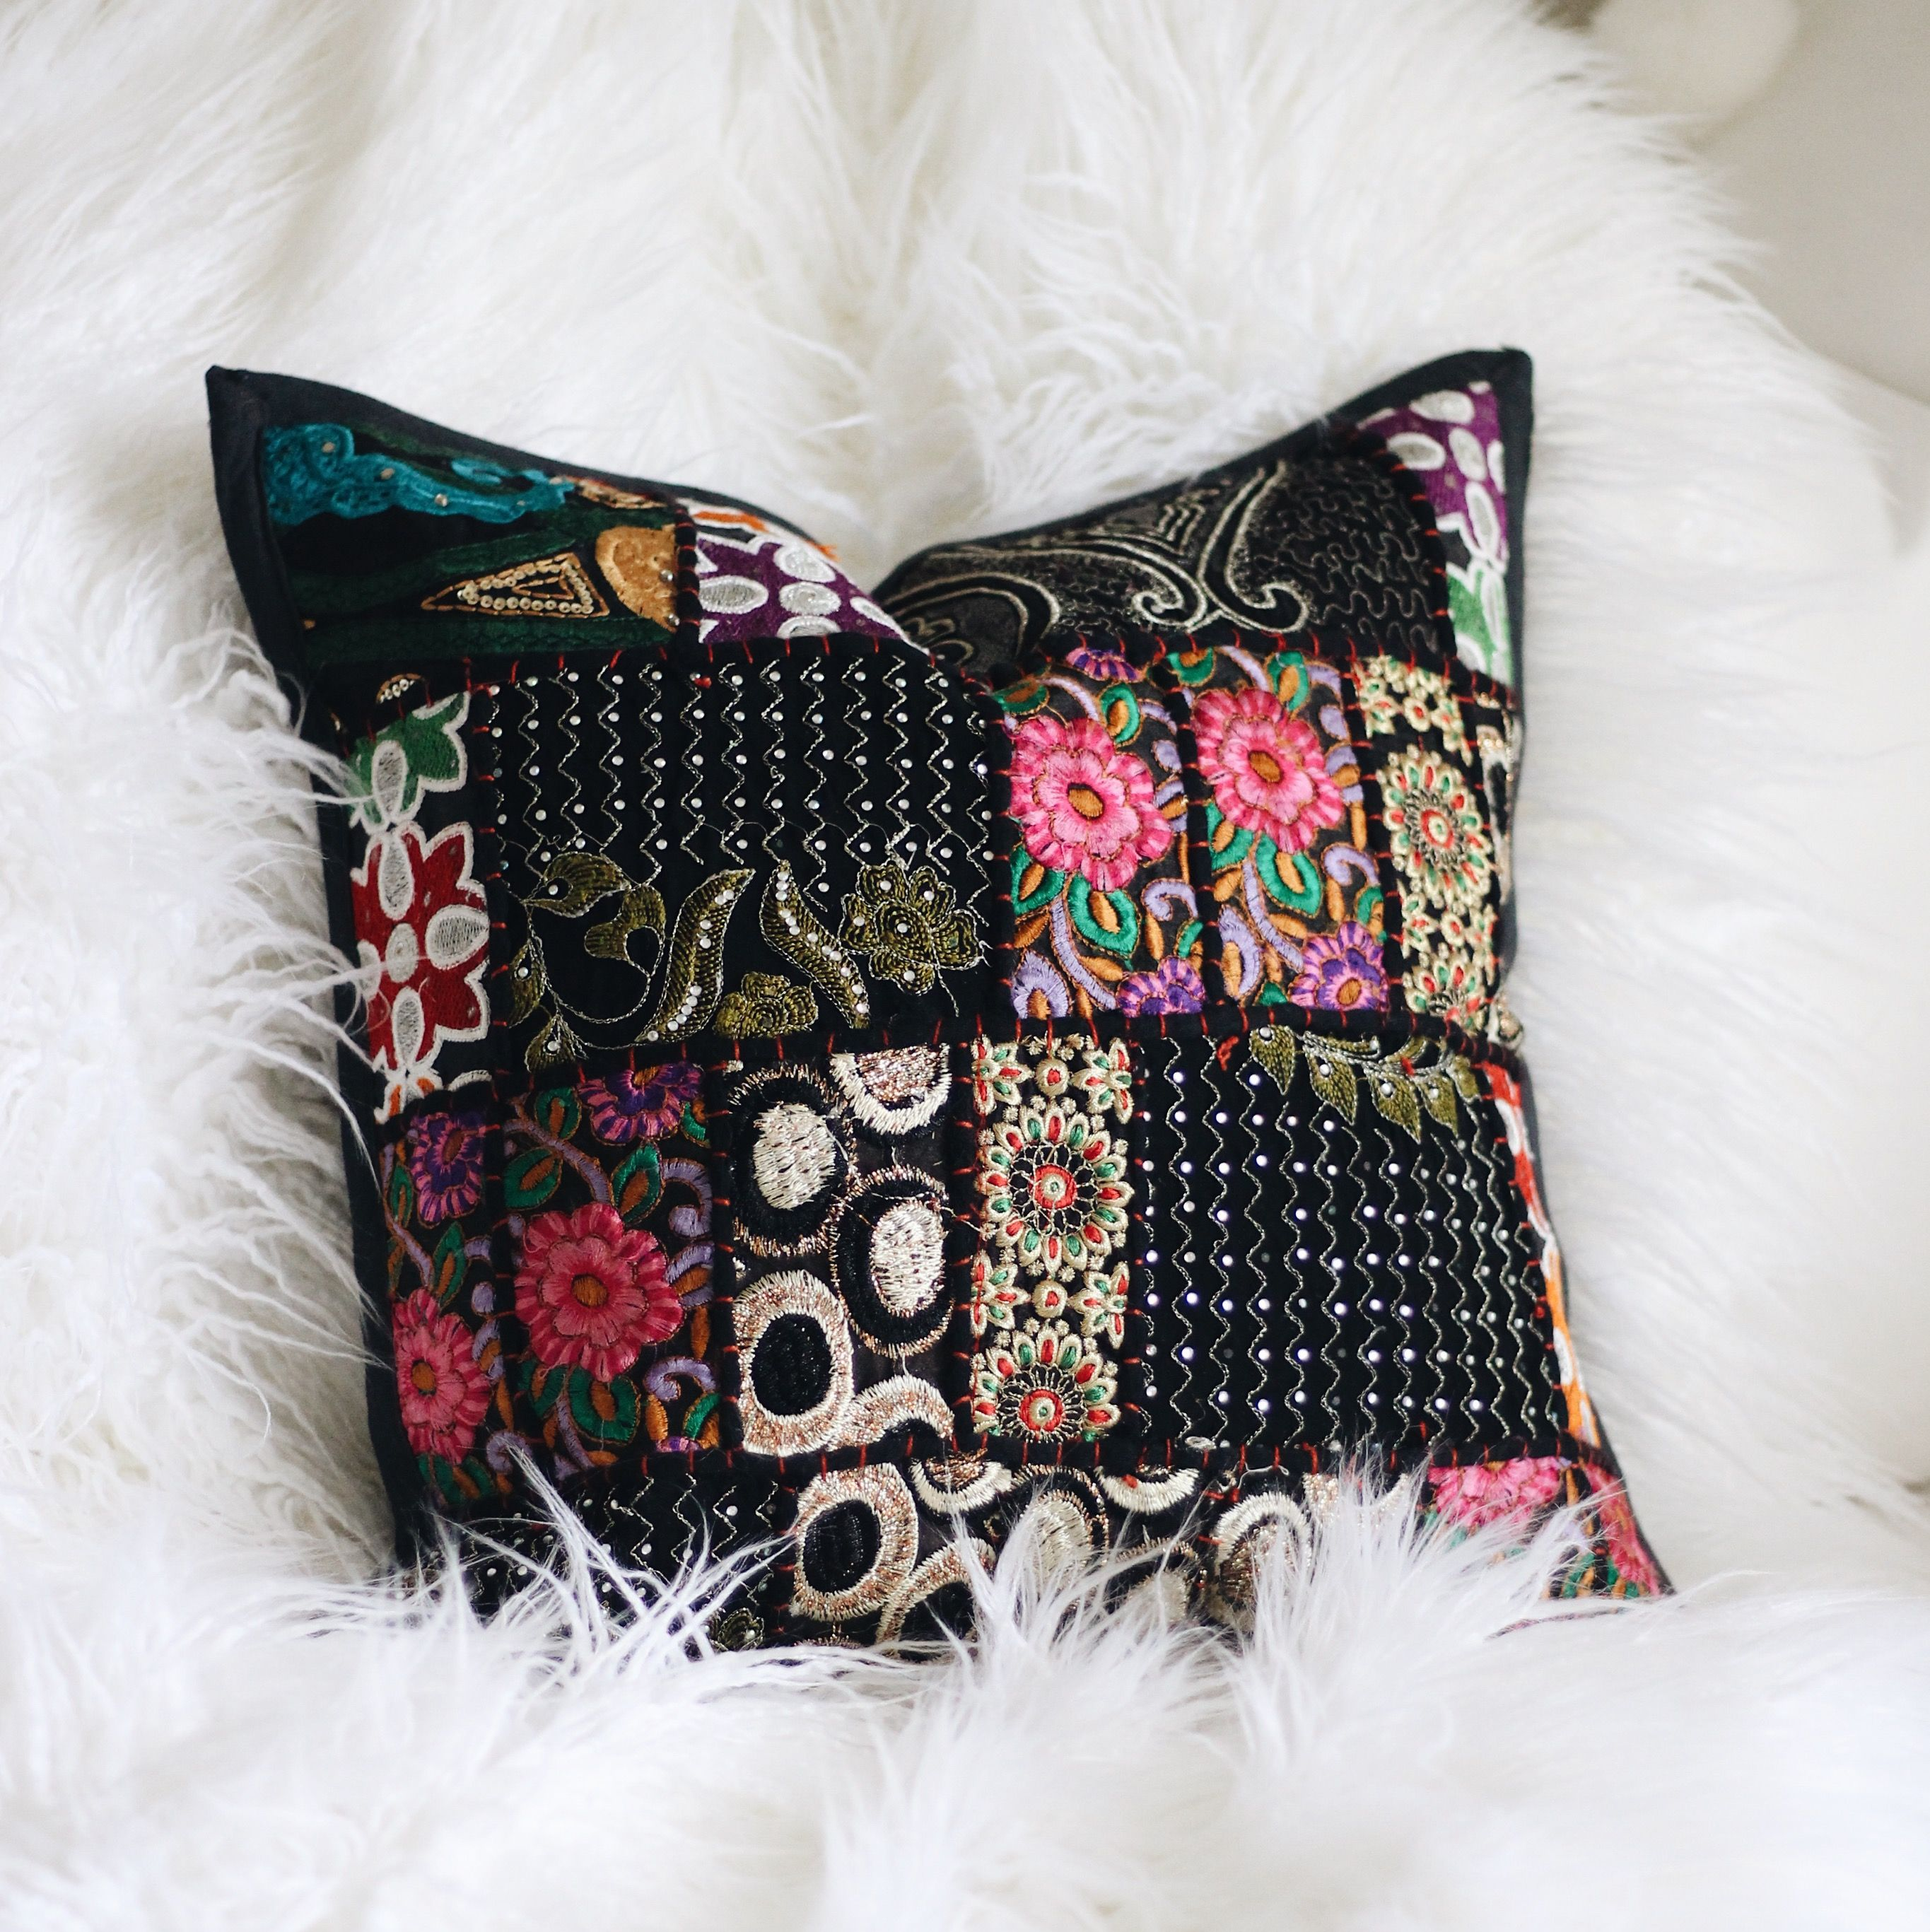 Claire bloom patchwork pillow covers patchwork pillow pillows and